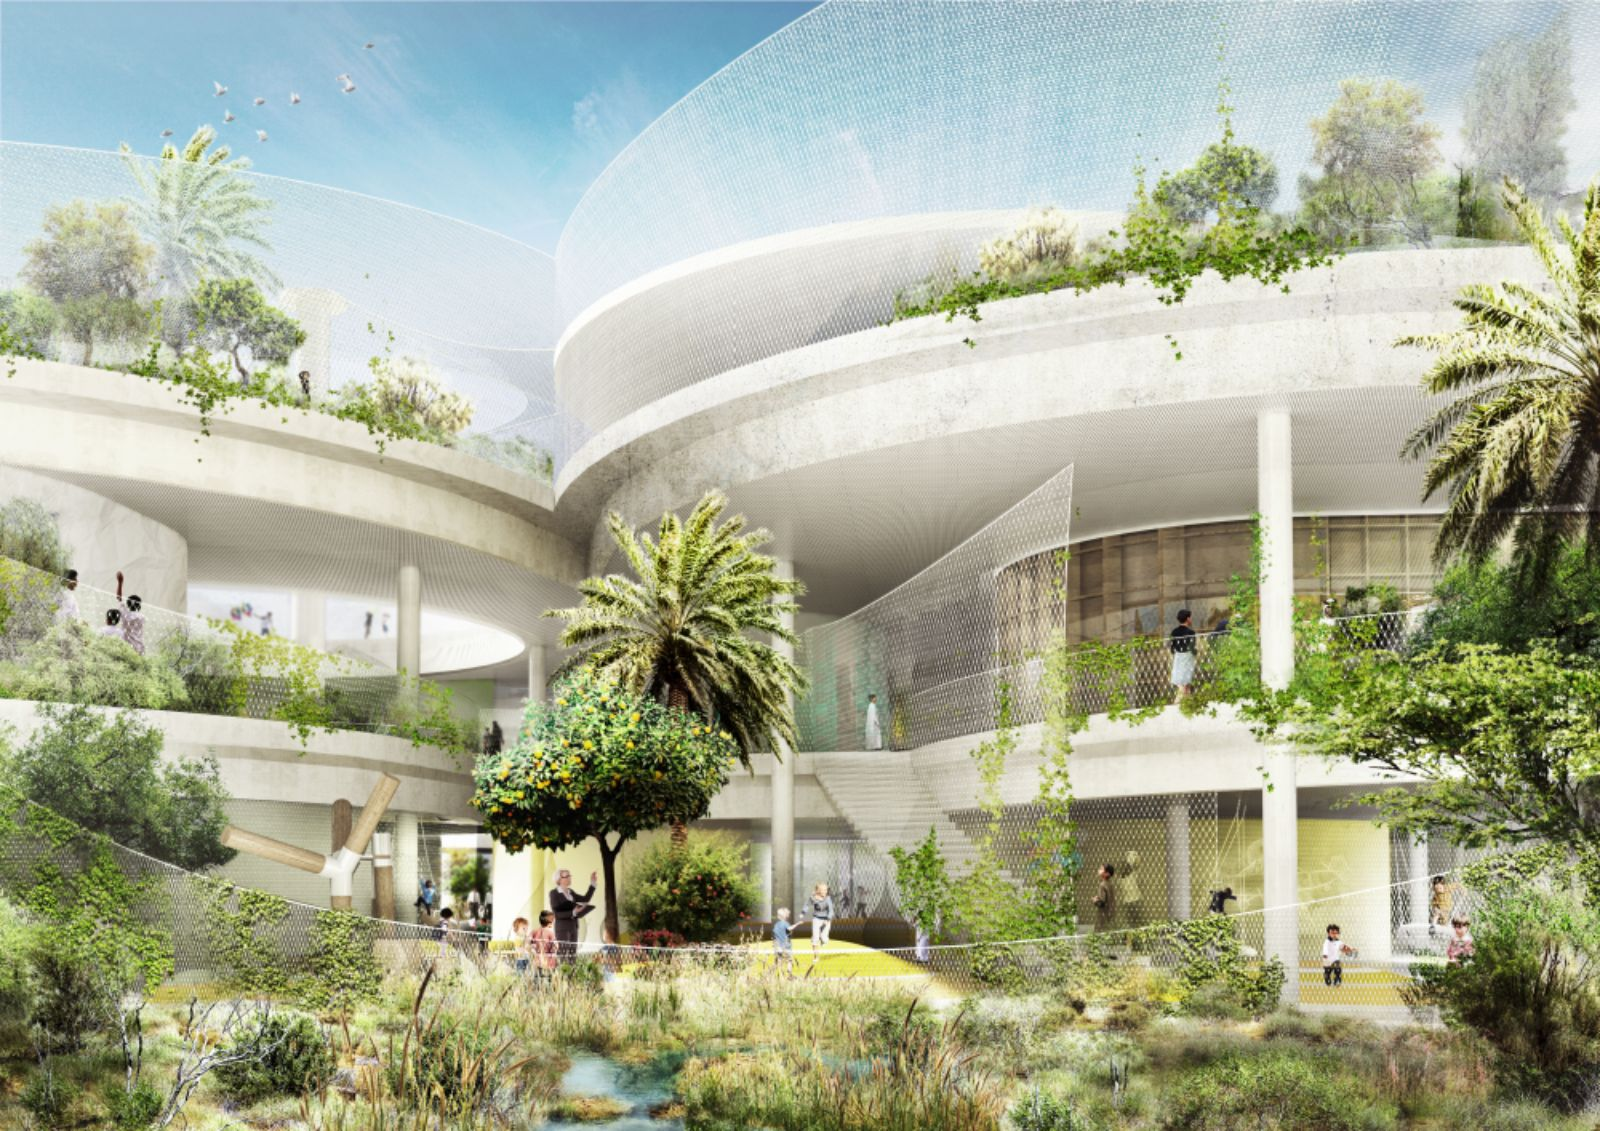 New Sustainable School In The United Arab Emirates By